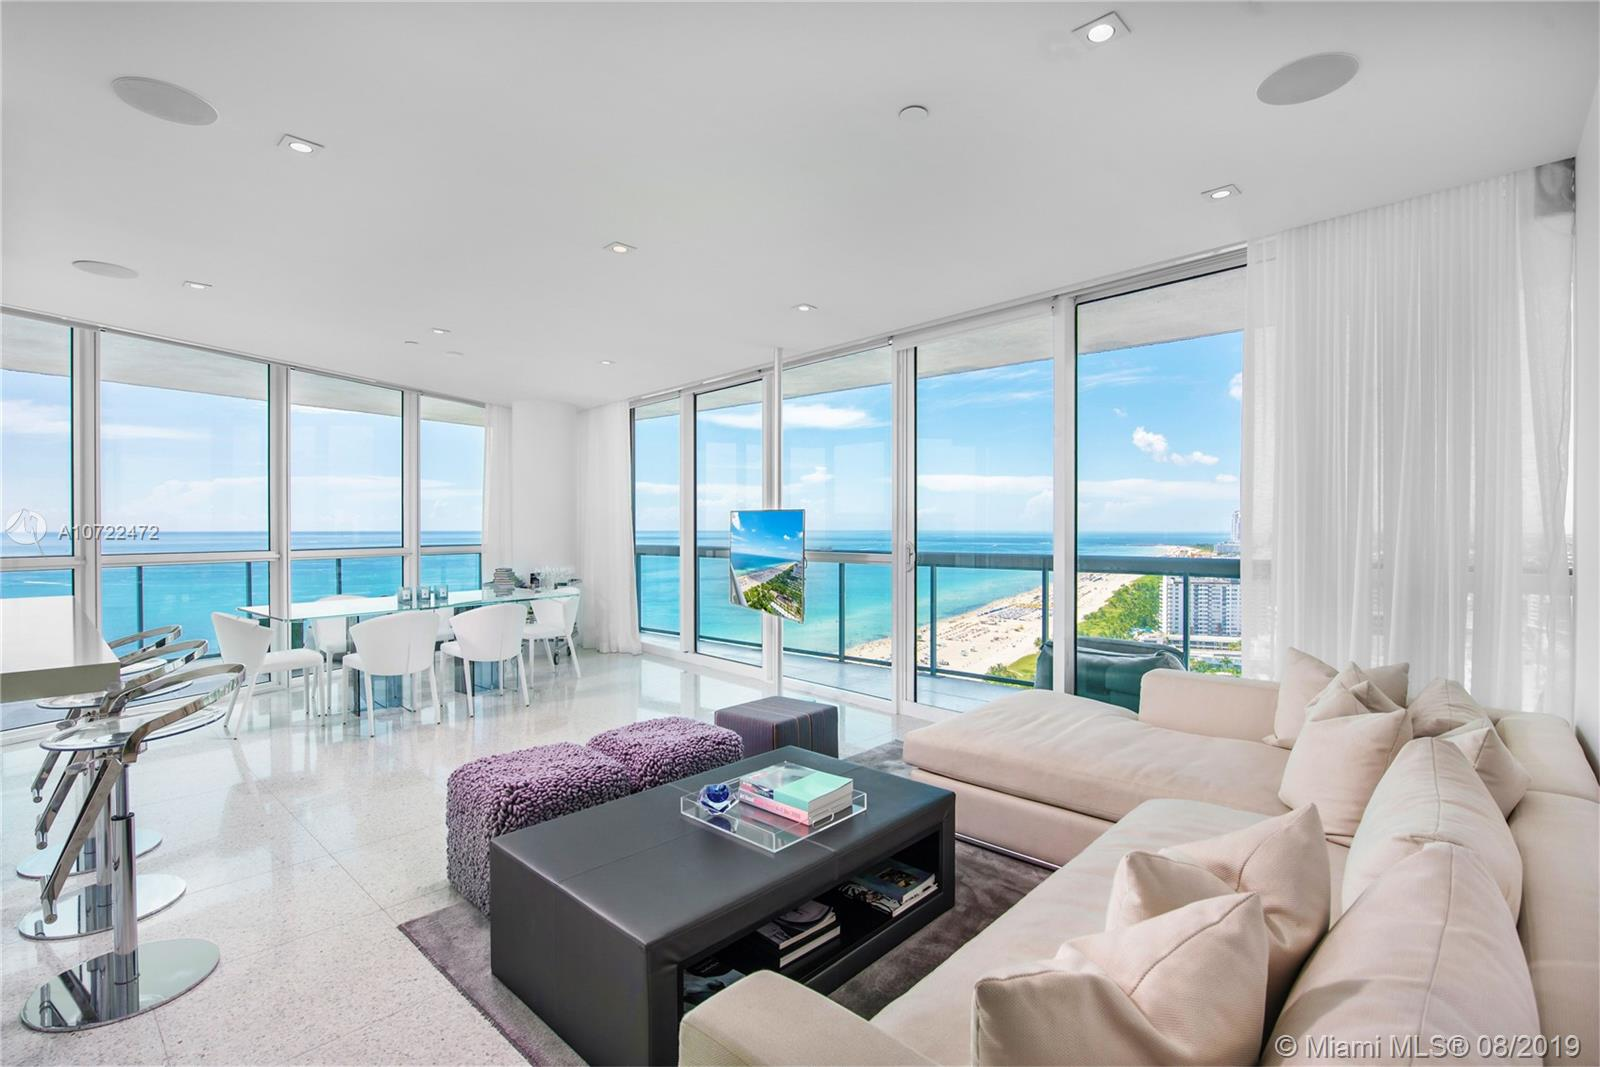 101  20th St #3208 For Sale A10722472, FL